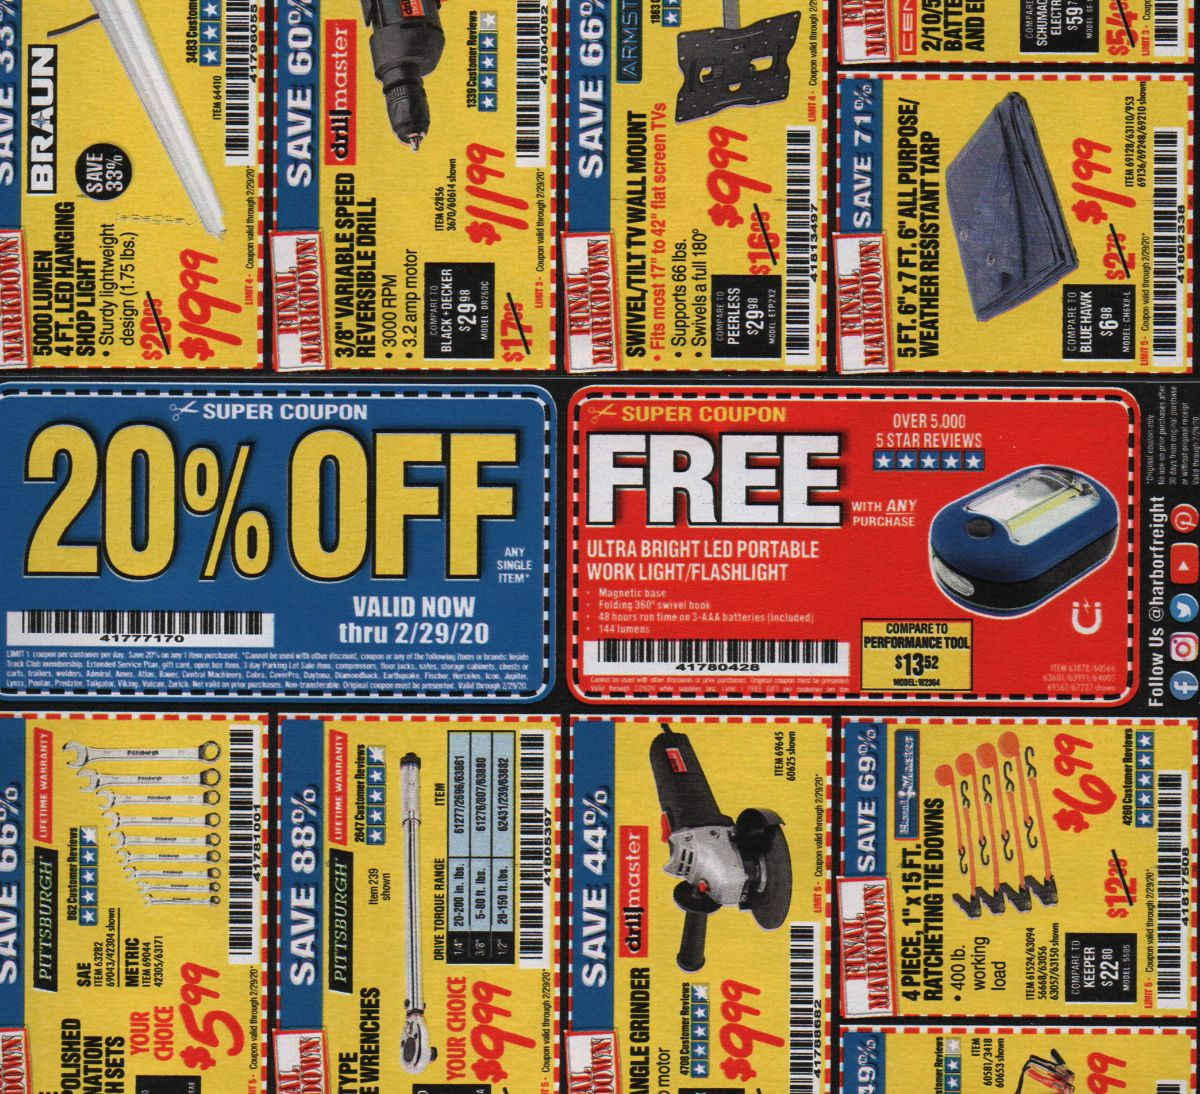 Can You use Multiple Harbor Freight Coupons at Once?